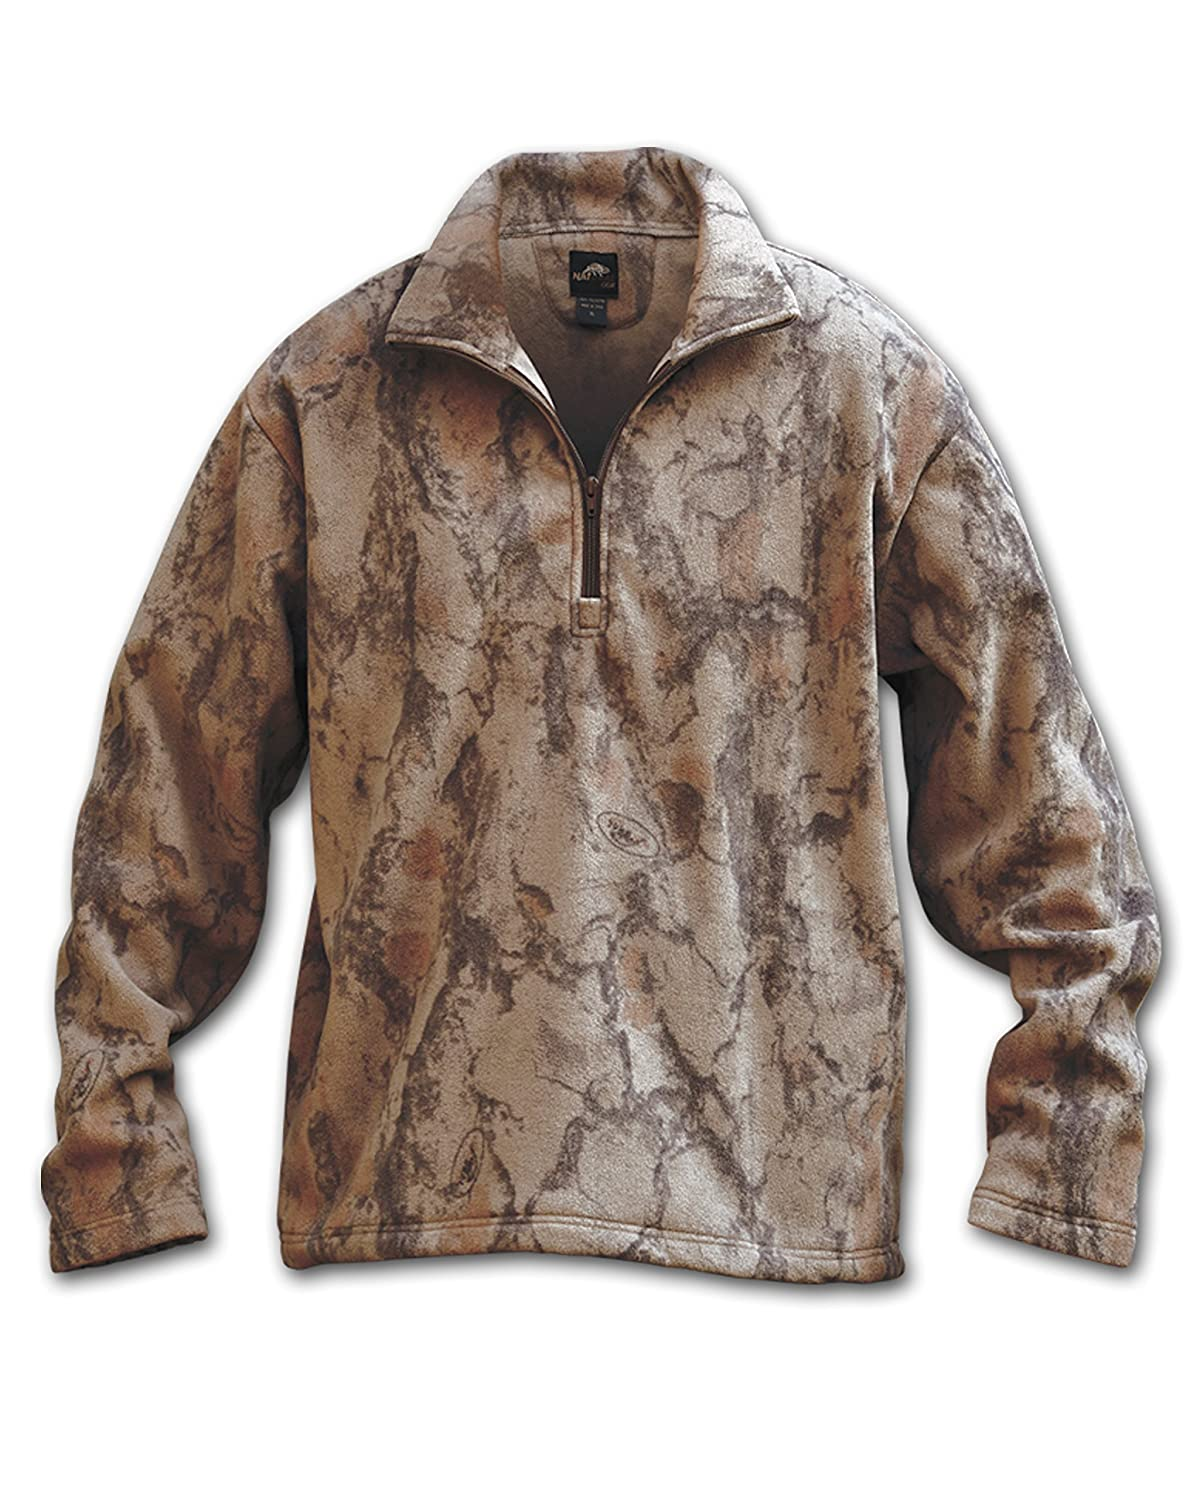 389efa2dc5a28 Natural Layering Fleece ¼ Zip Pullover, Camo Hunting Jacket for Men and  Women, Women's and Men's Layer Jacket